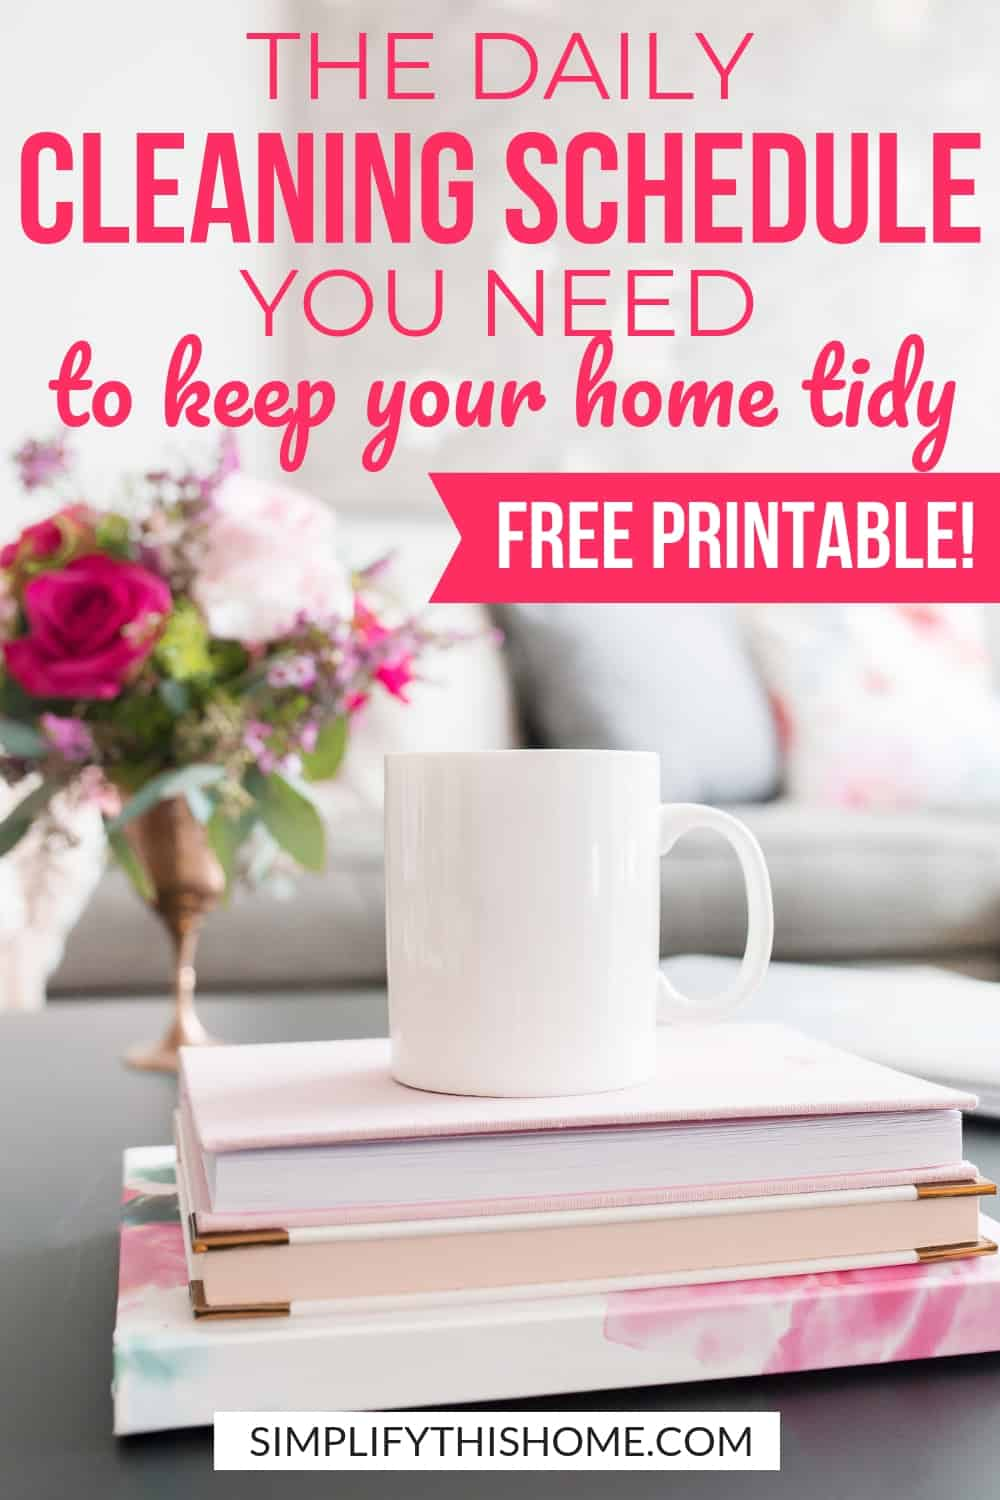 Use this daily cleaning schedule to keep your home tidy every single day!   free printable daily cleaning checklist